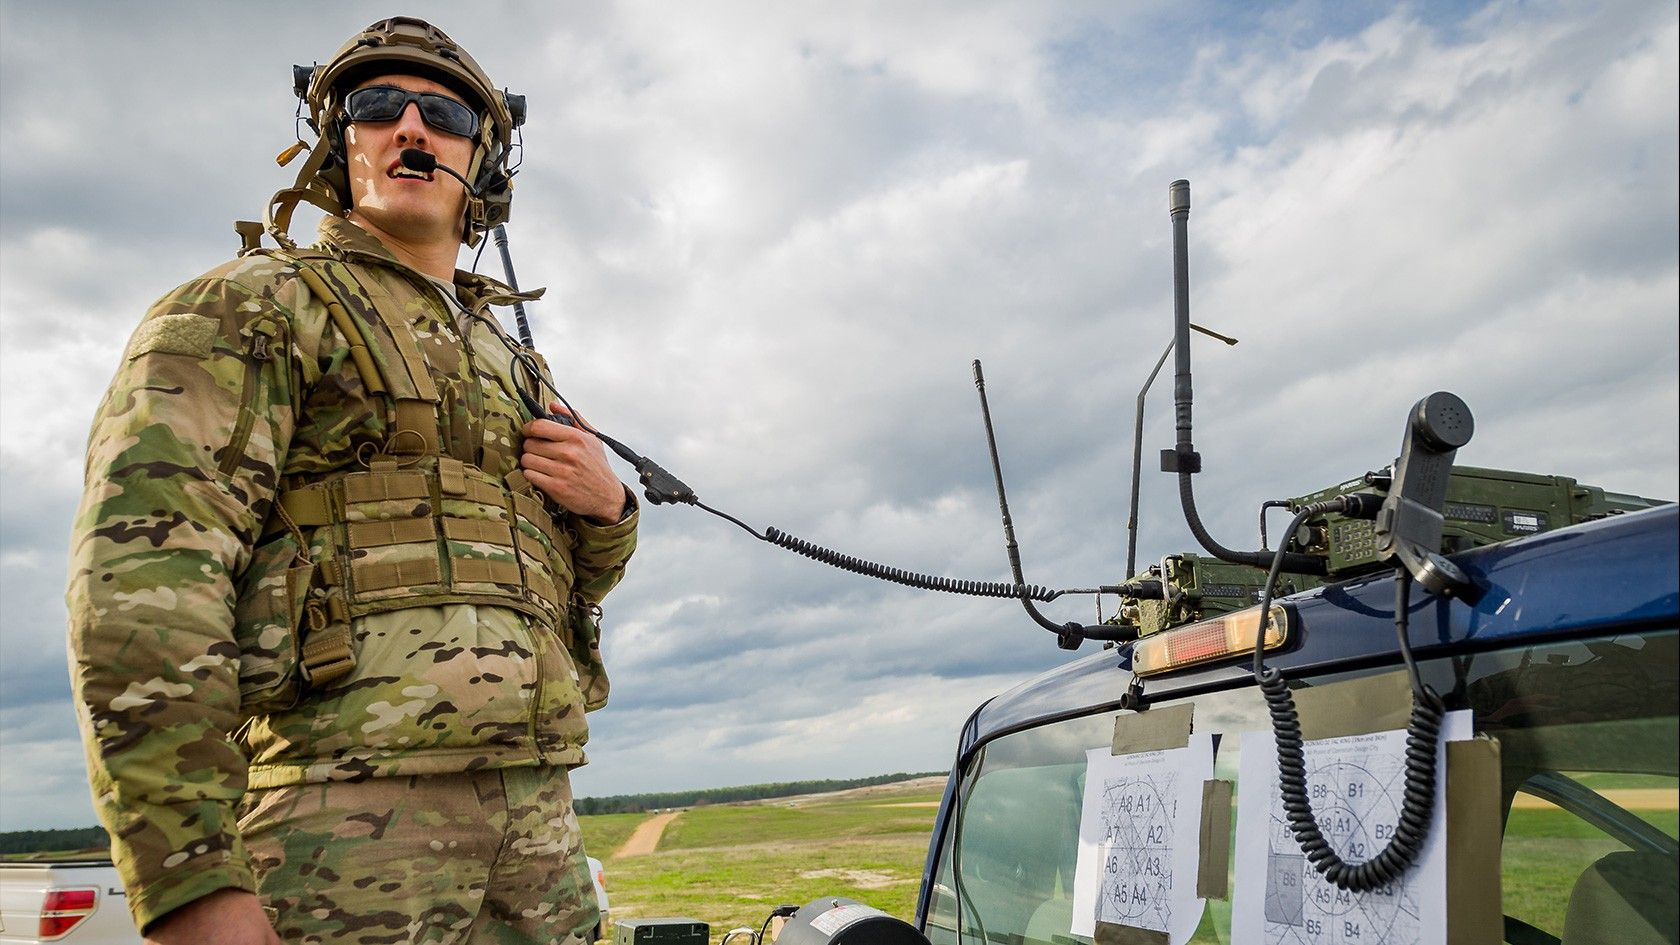 SPECIAL OPERATIONS WEATHER TECHNICIAN PROVIDING TACTICAL